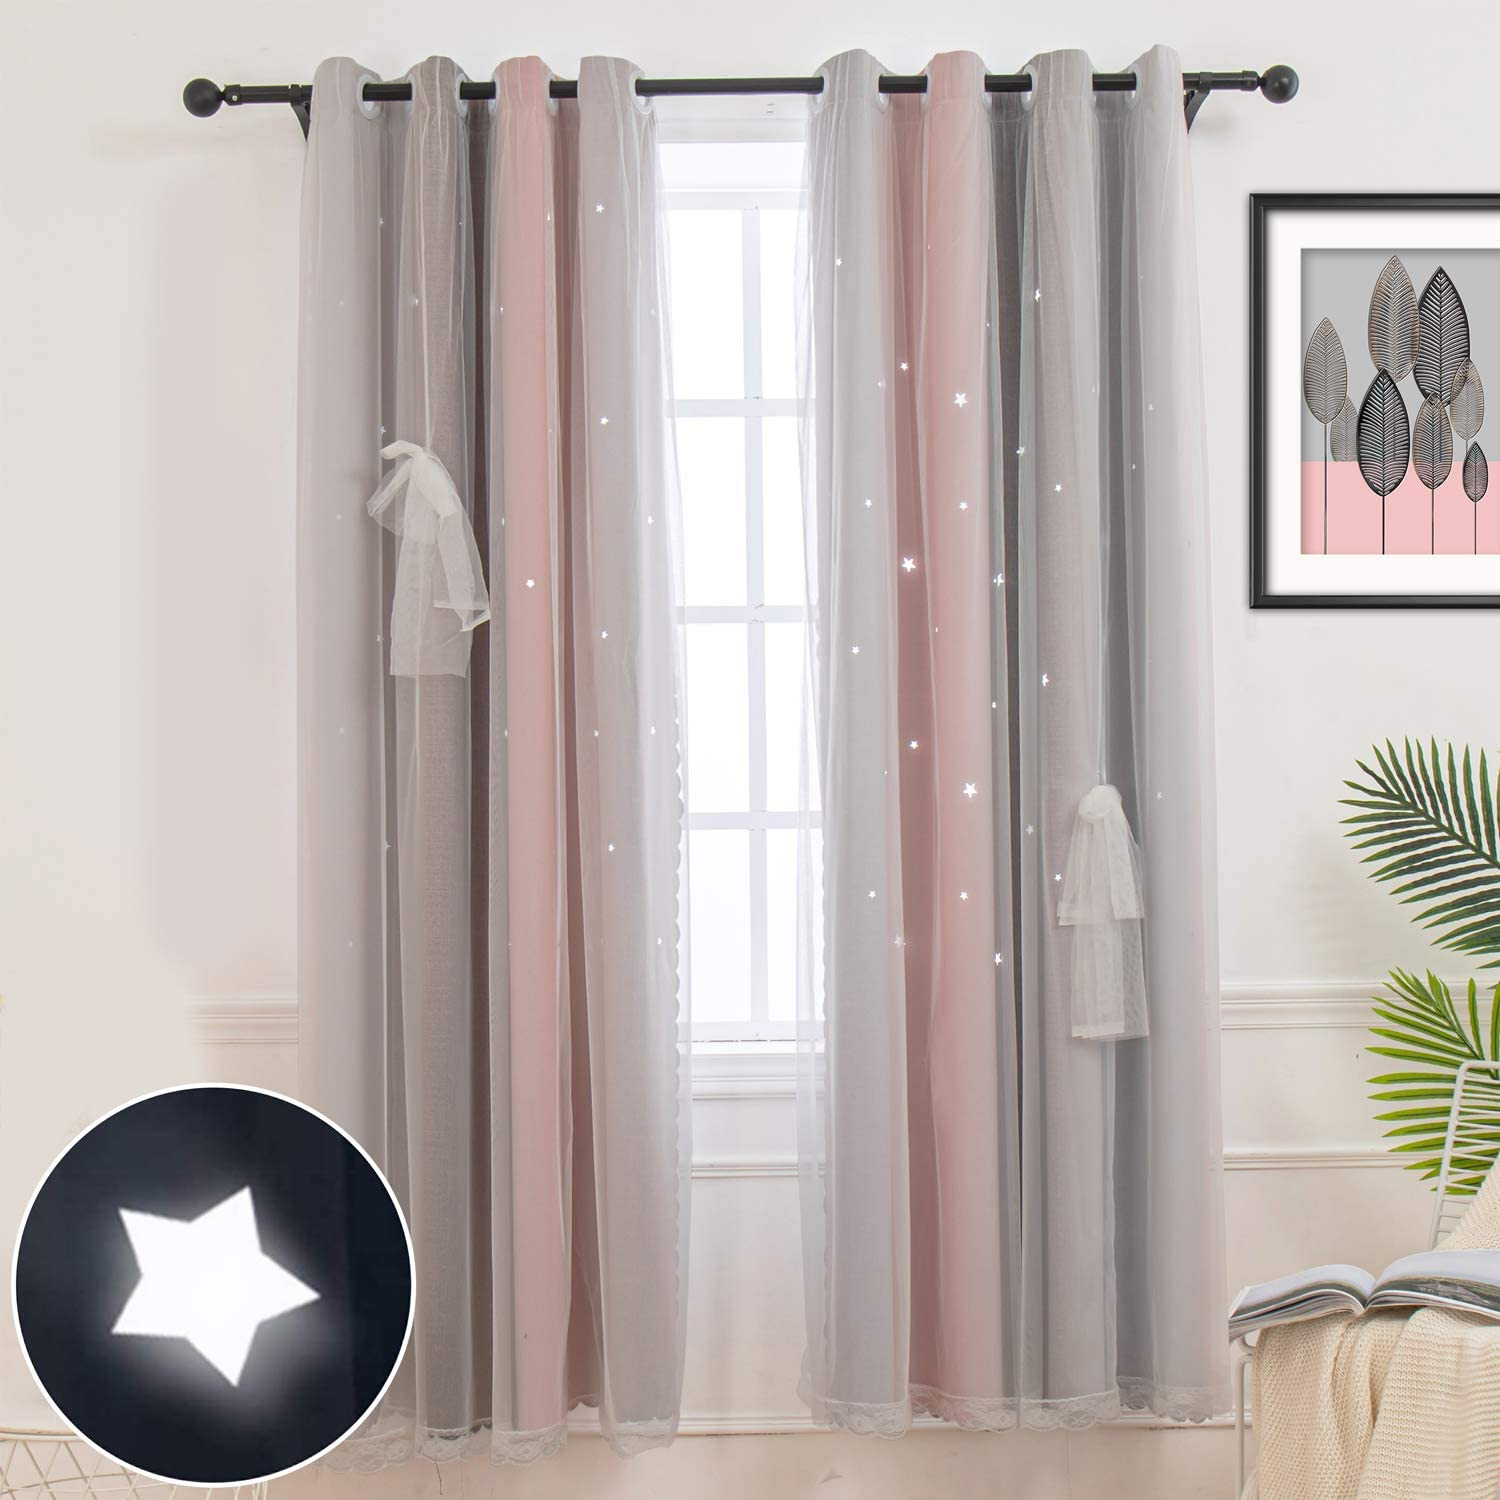 Amazon Com Hughapy Star Curtains Stars Blackout Curtains For Kids Girls Bedroom Living Room Colorful Double Layer Star Cut Out Stripe Window Curtains 1 Panel 52w X 63l Pink Grey Home Kitchen